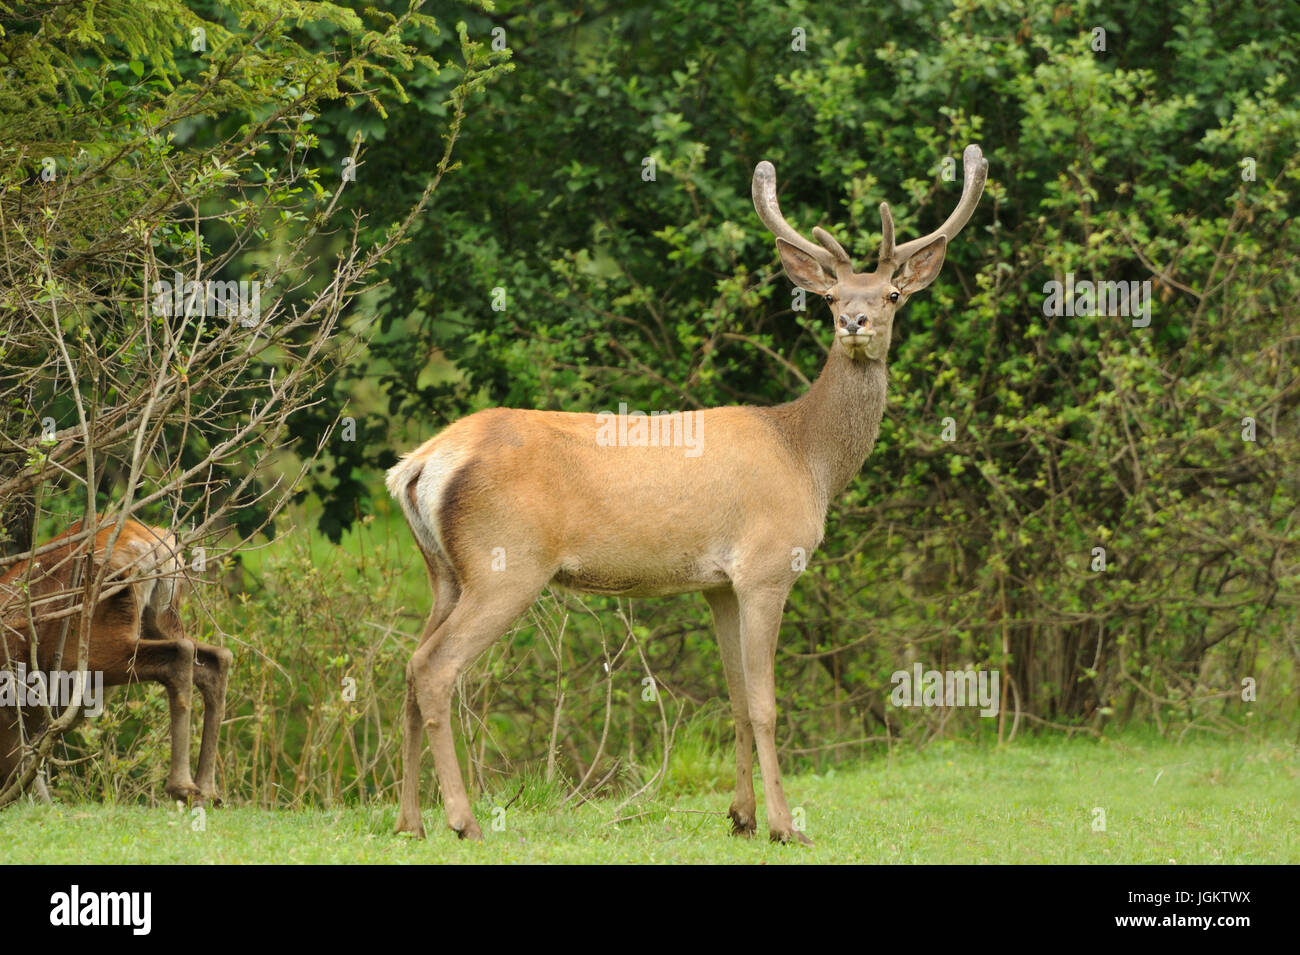 Cerfs de l'Altaï dans leur habitat naturel Photo Stock